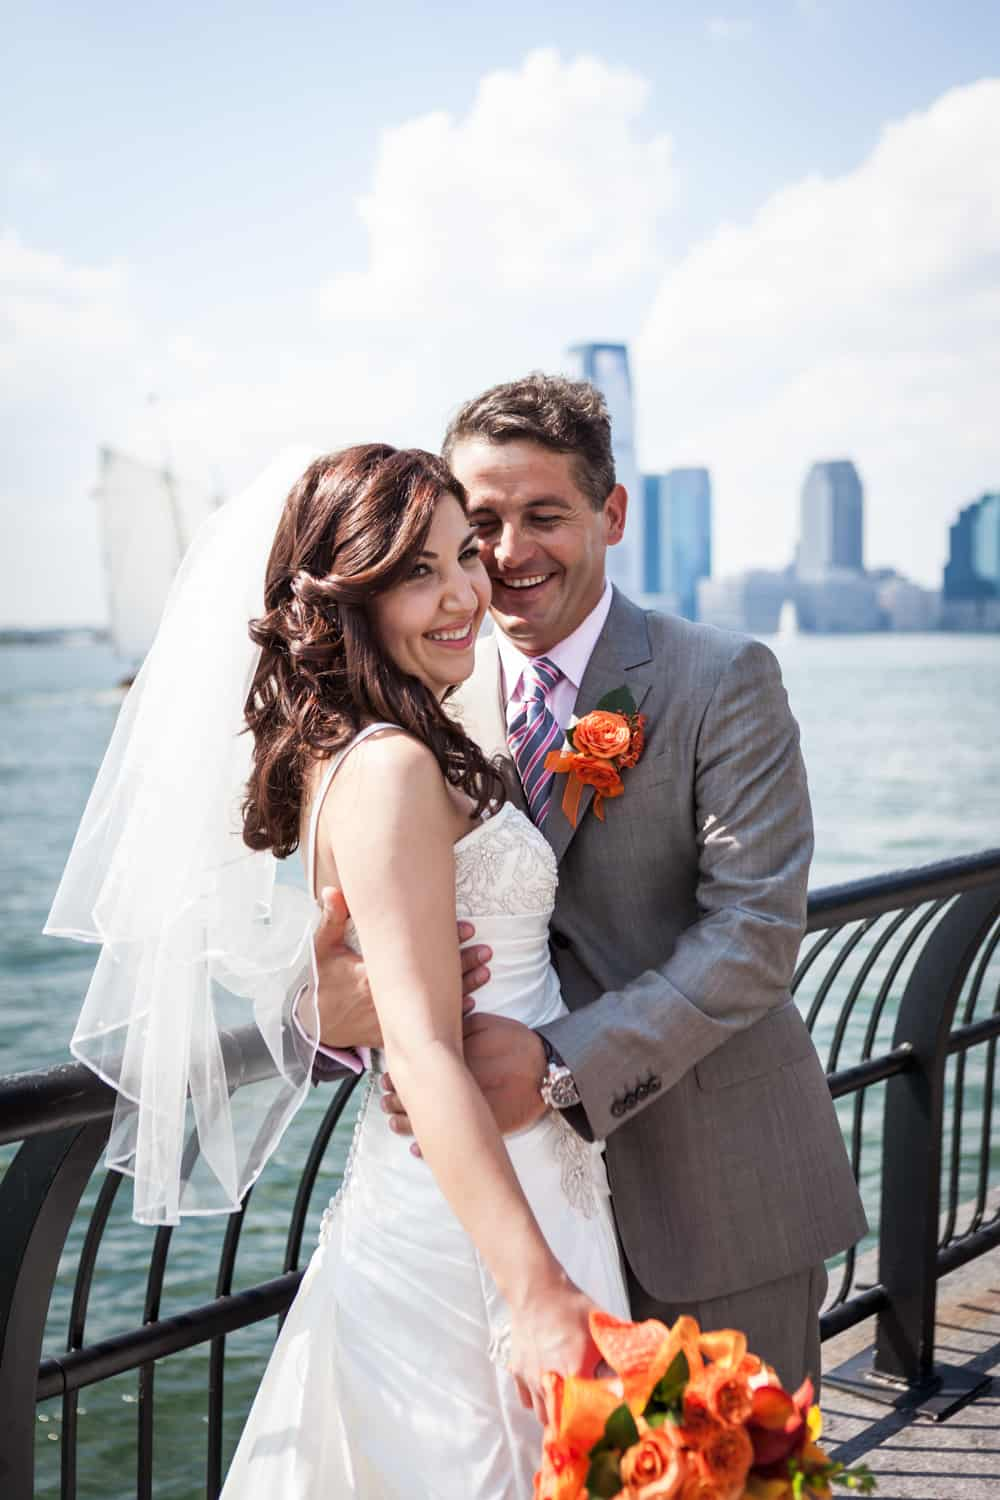 Bride and groom hugging by railing of NYC waterfront